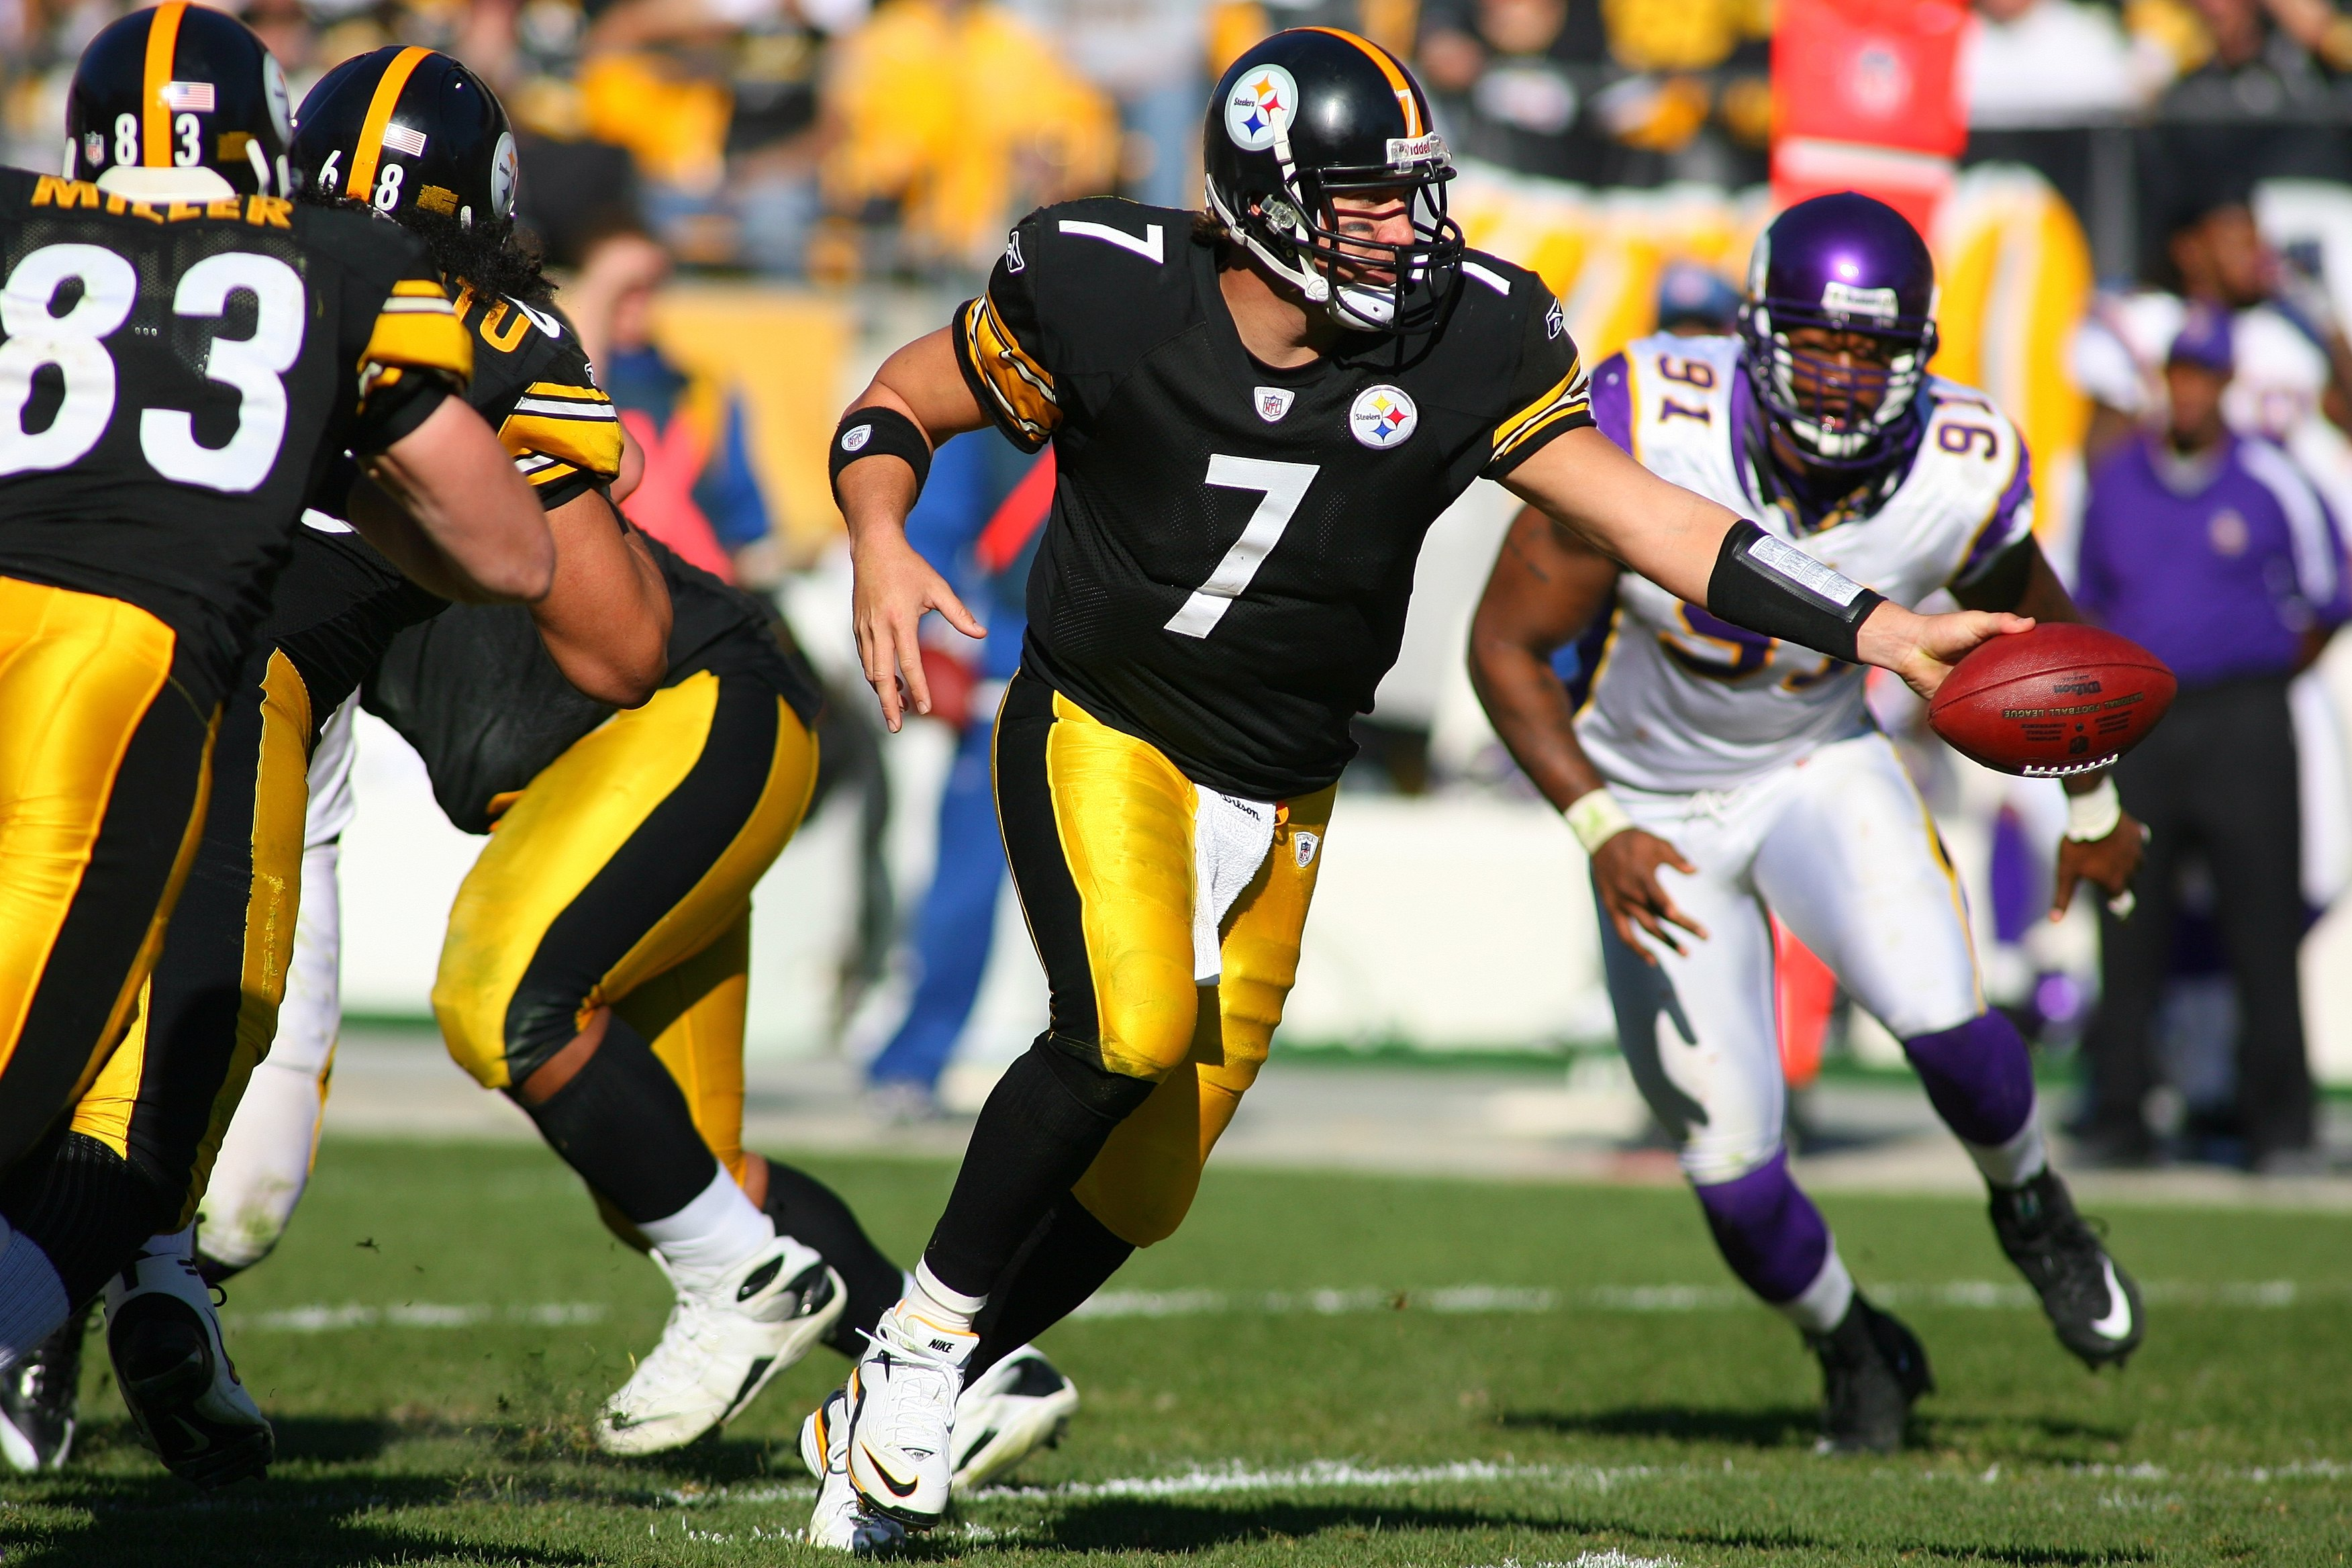 PITTSBURGH - OCTOBER 25:  Quarterback Ben Roethlisberger #7 of the Pittsburgh Steelers looks to hand off the ball during the NFL game against the Minnesota Vikings at Heinz Field on October 25, 2009 in Pittsburgh, Pennsylvania. The Steelers defeated the V